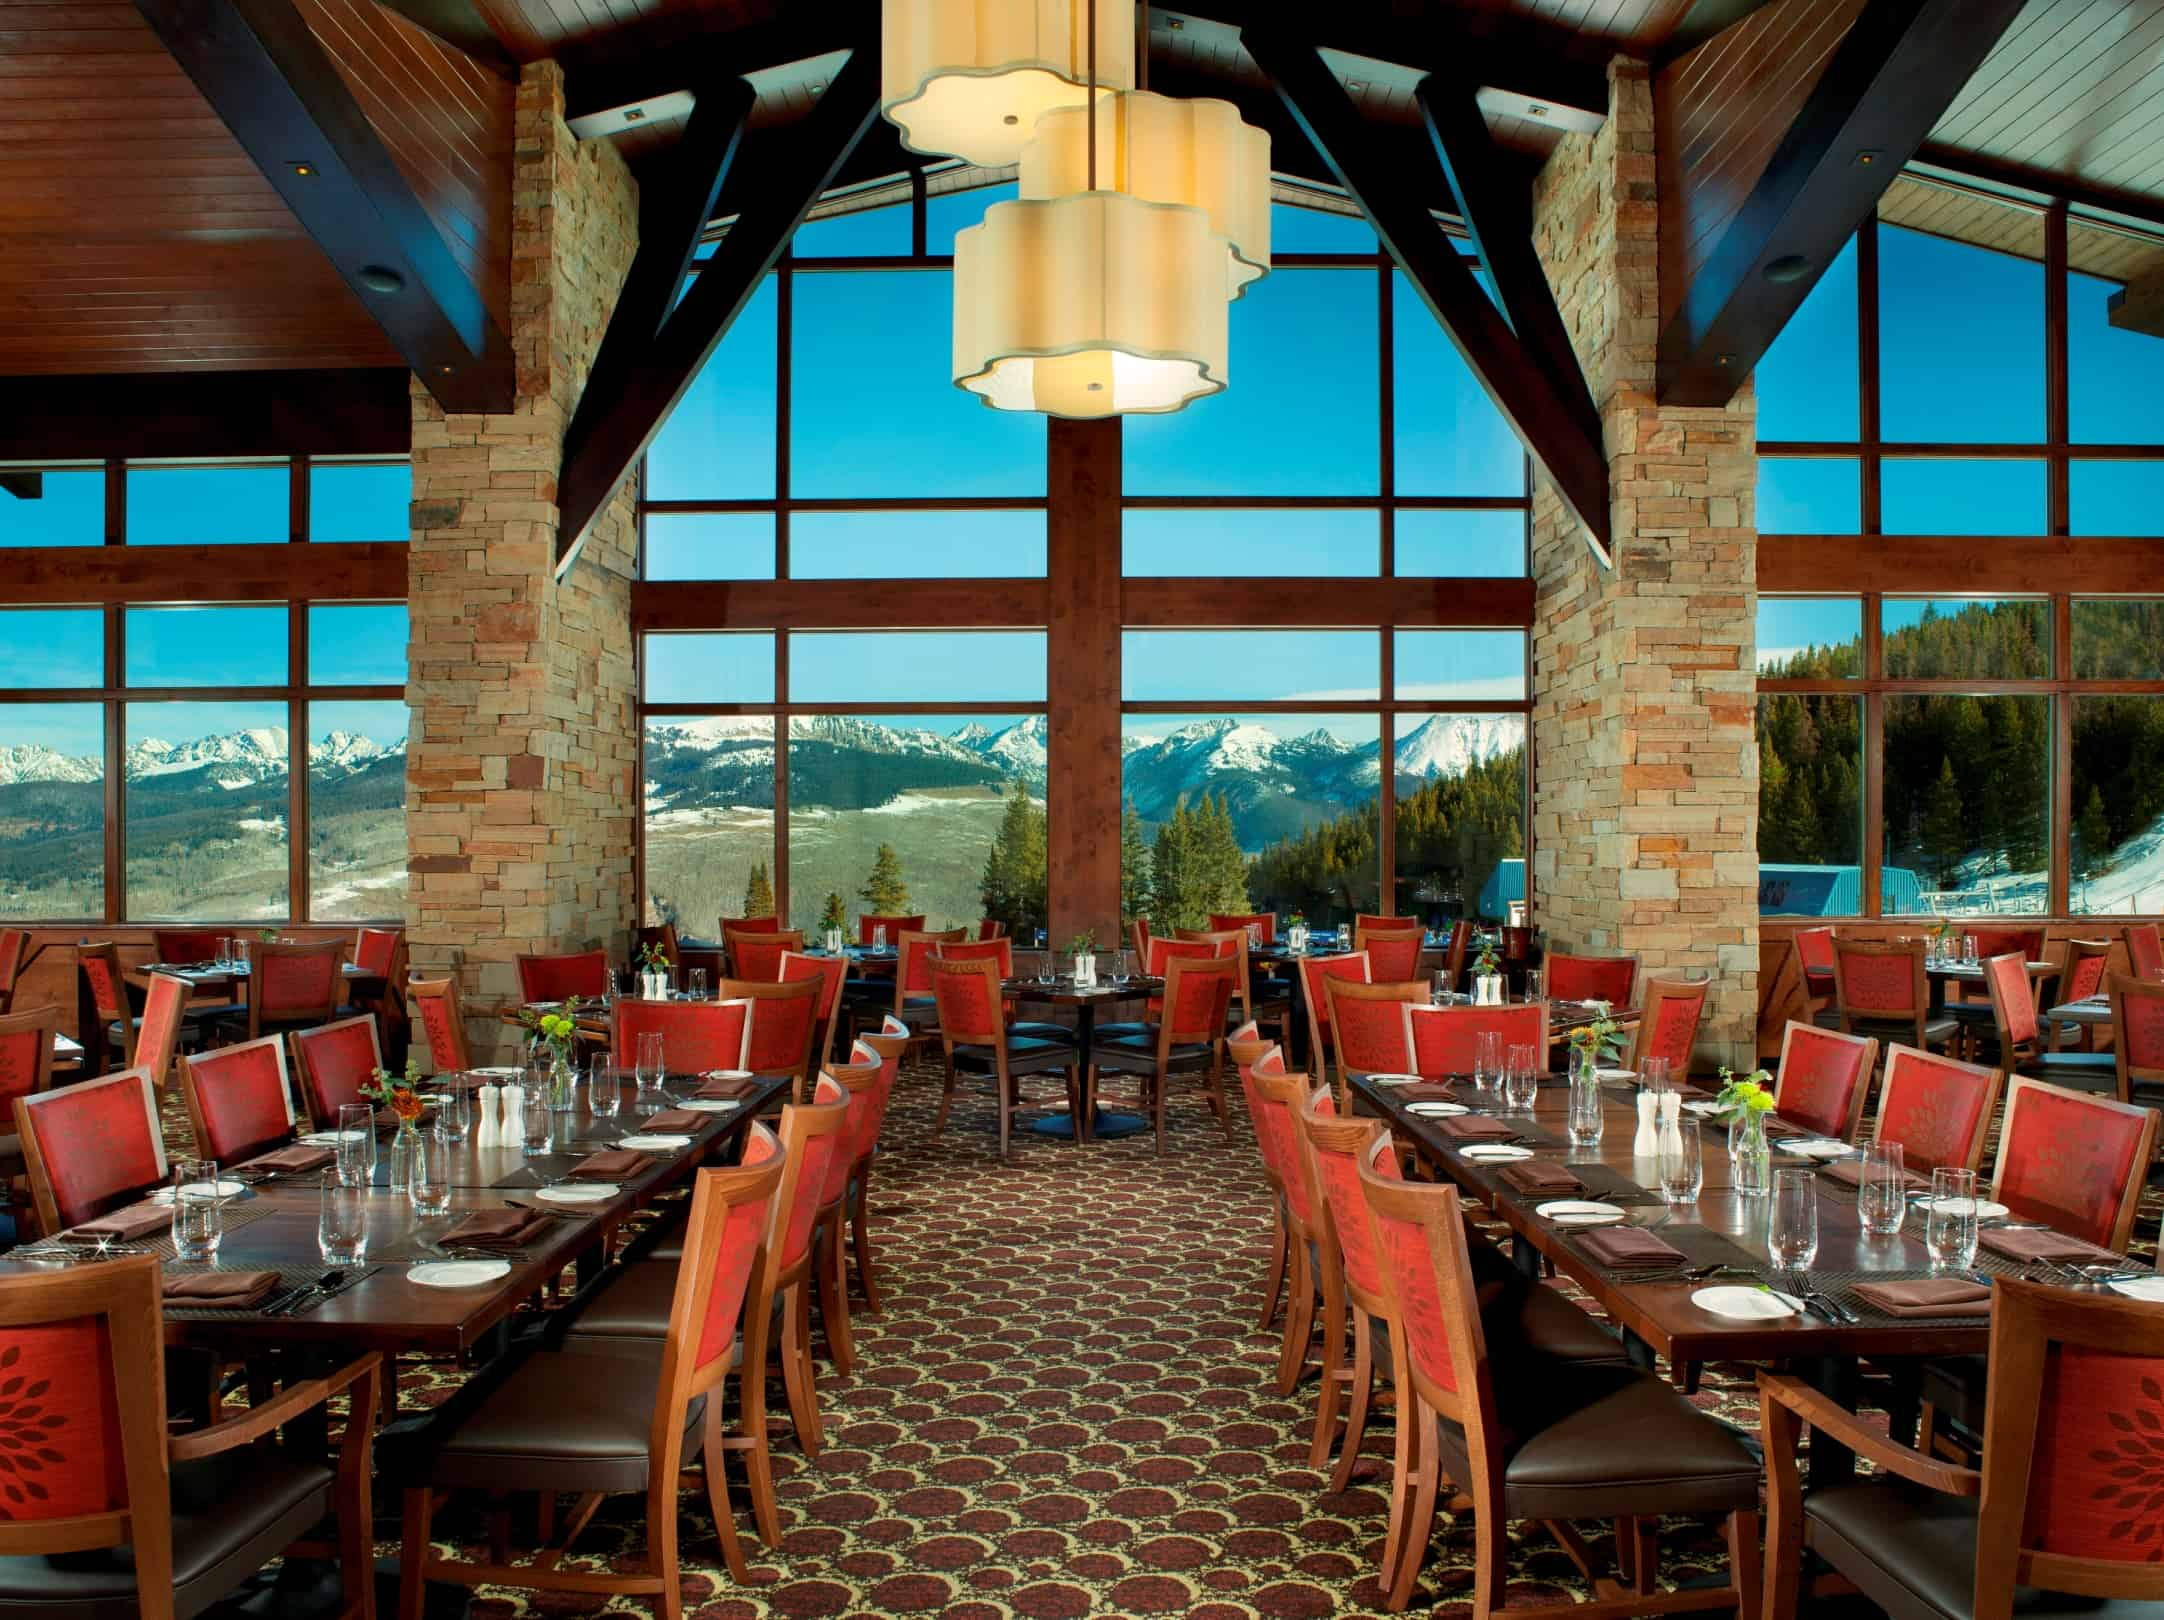 The 10 Best On Mountain Restaurants At Ski Resorts In North America Peak Eats Boomers Bucket List Travel